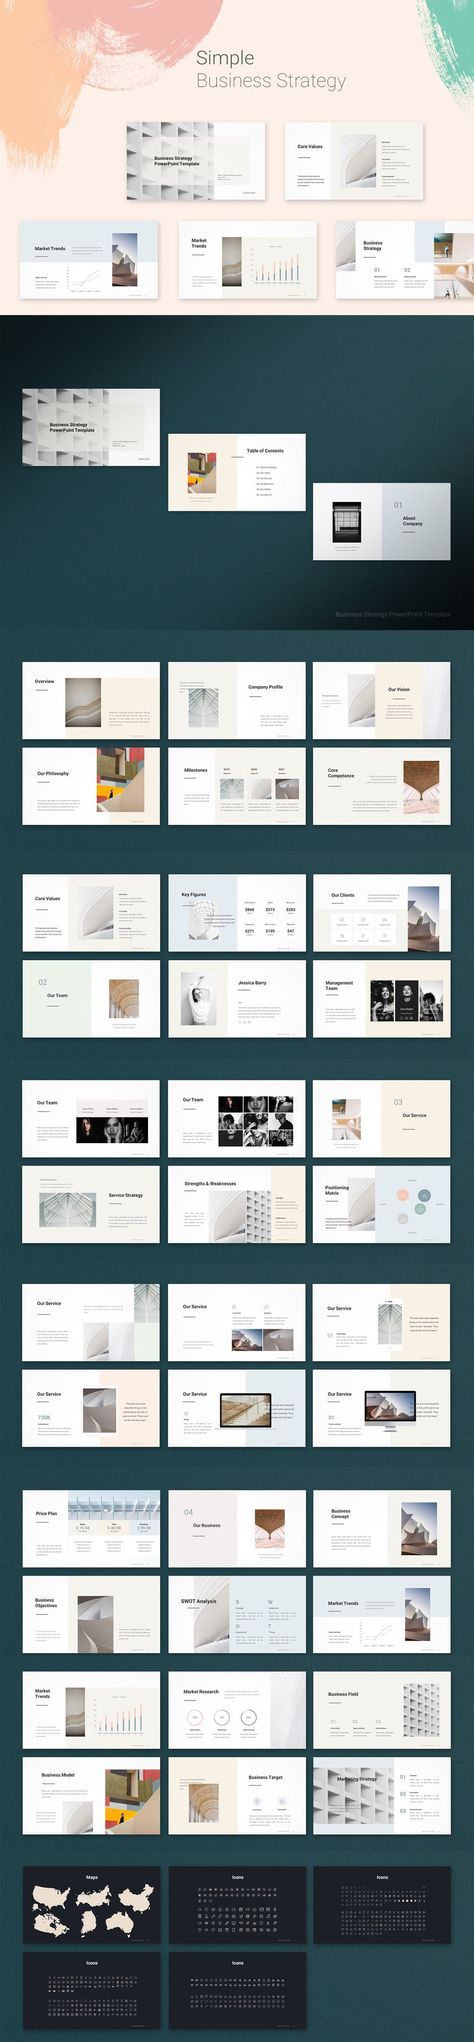 Simple Business Strategy Powerpoint Template